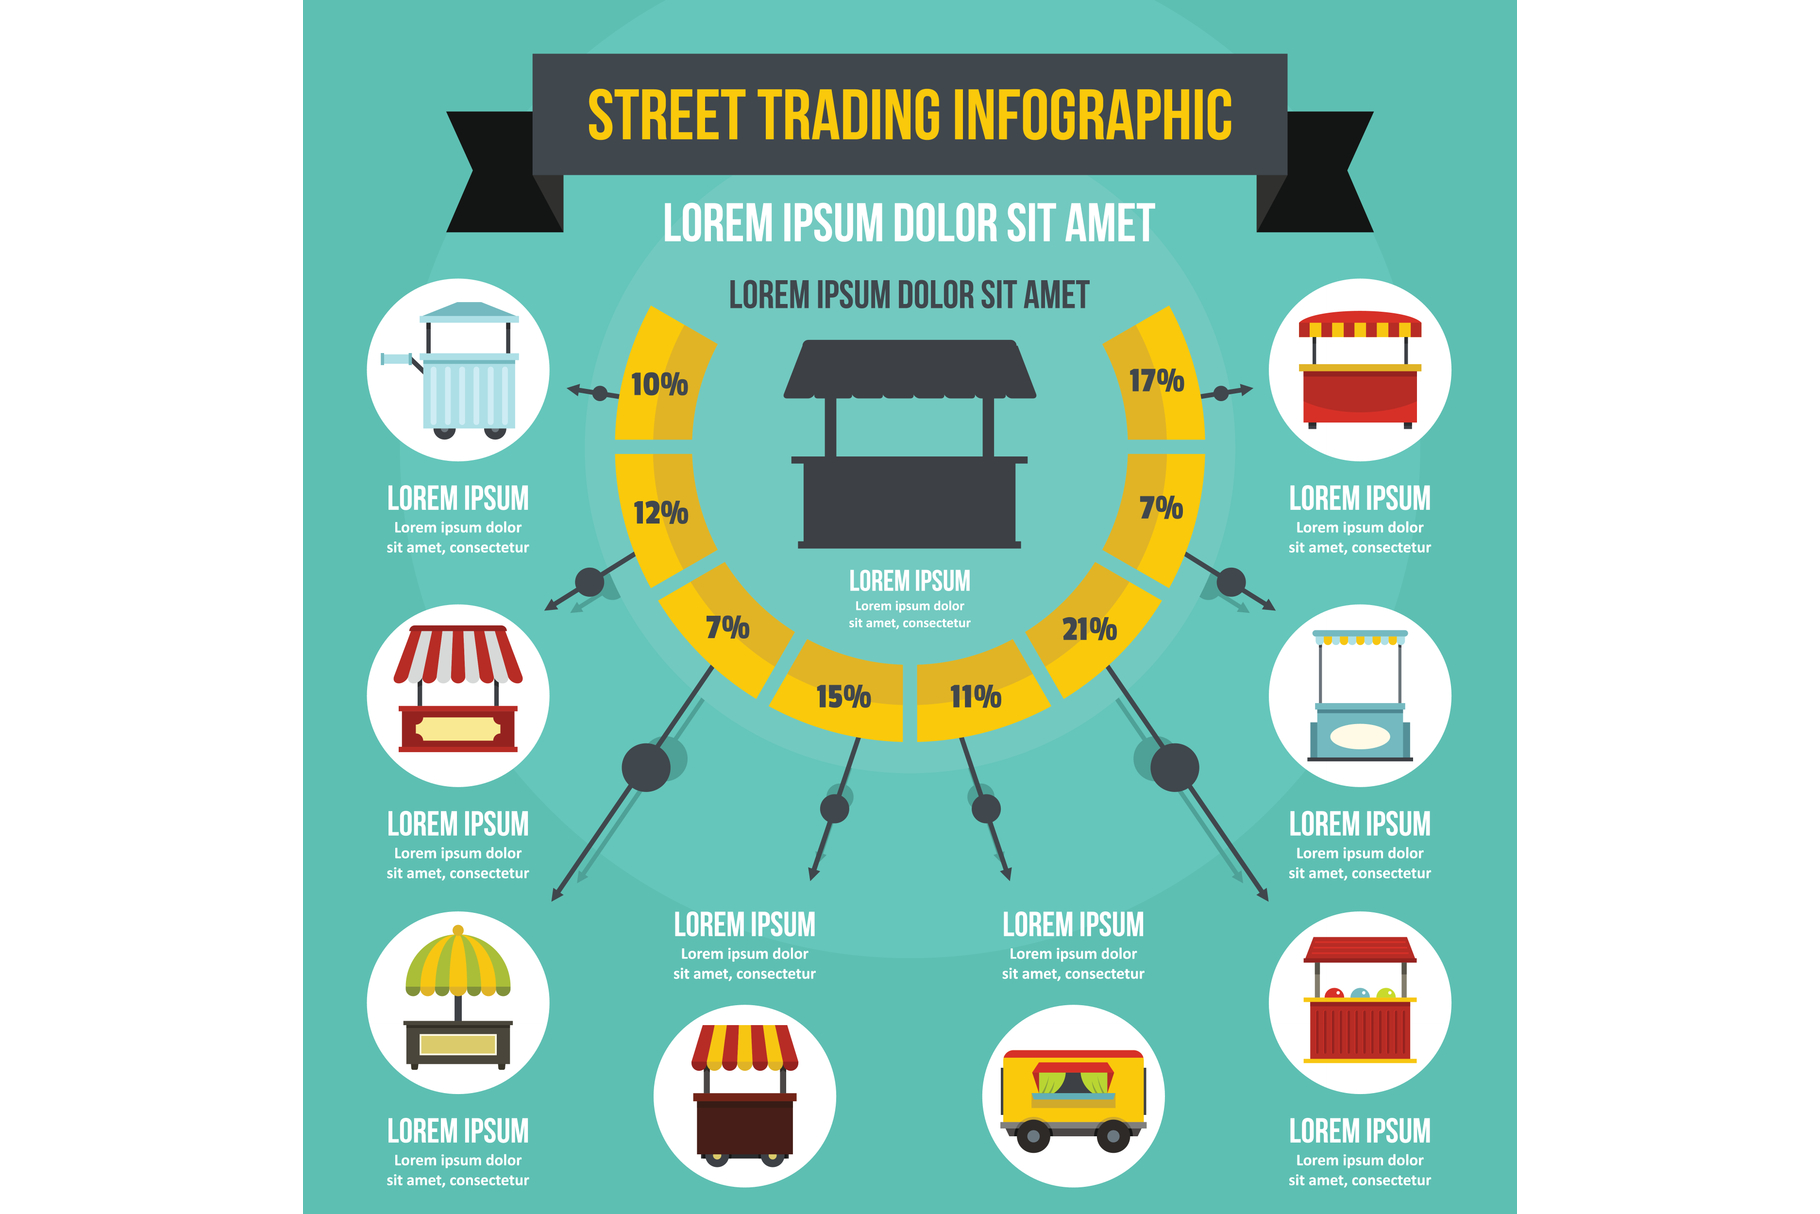 Street trading infographic concept, flat style example image 1